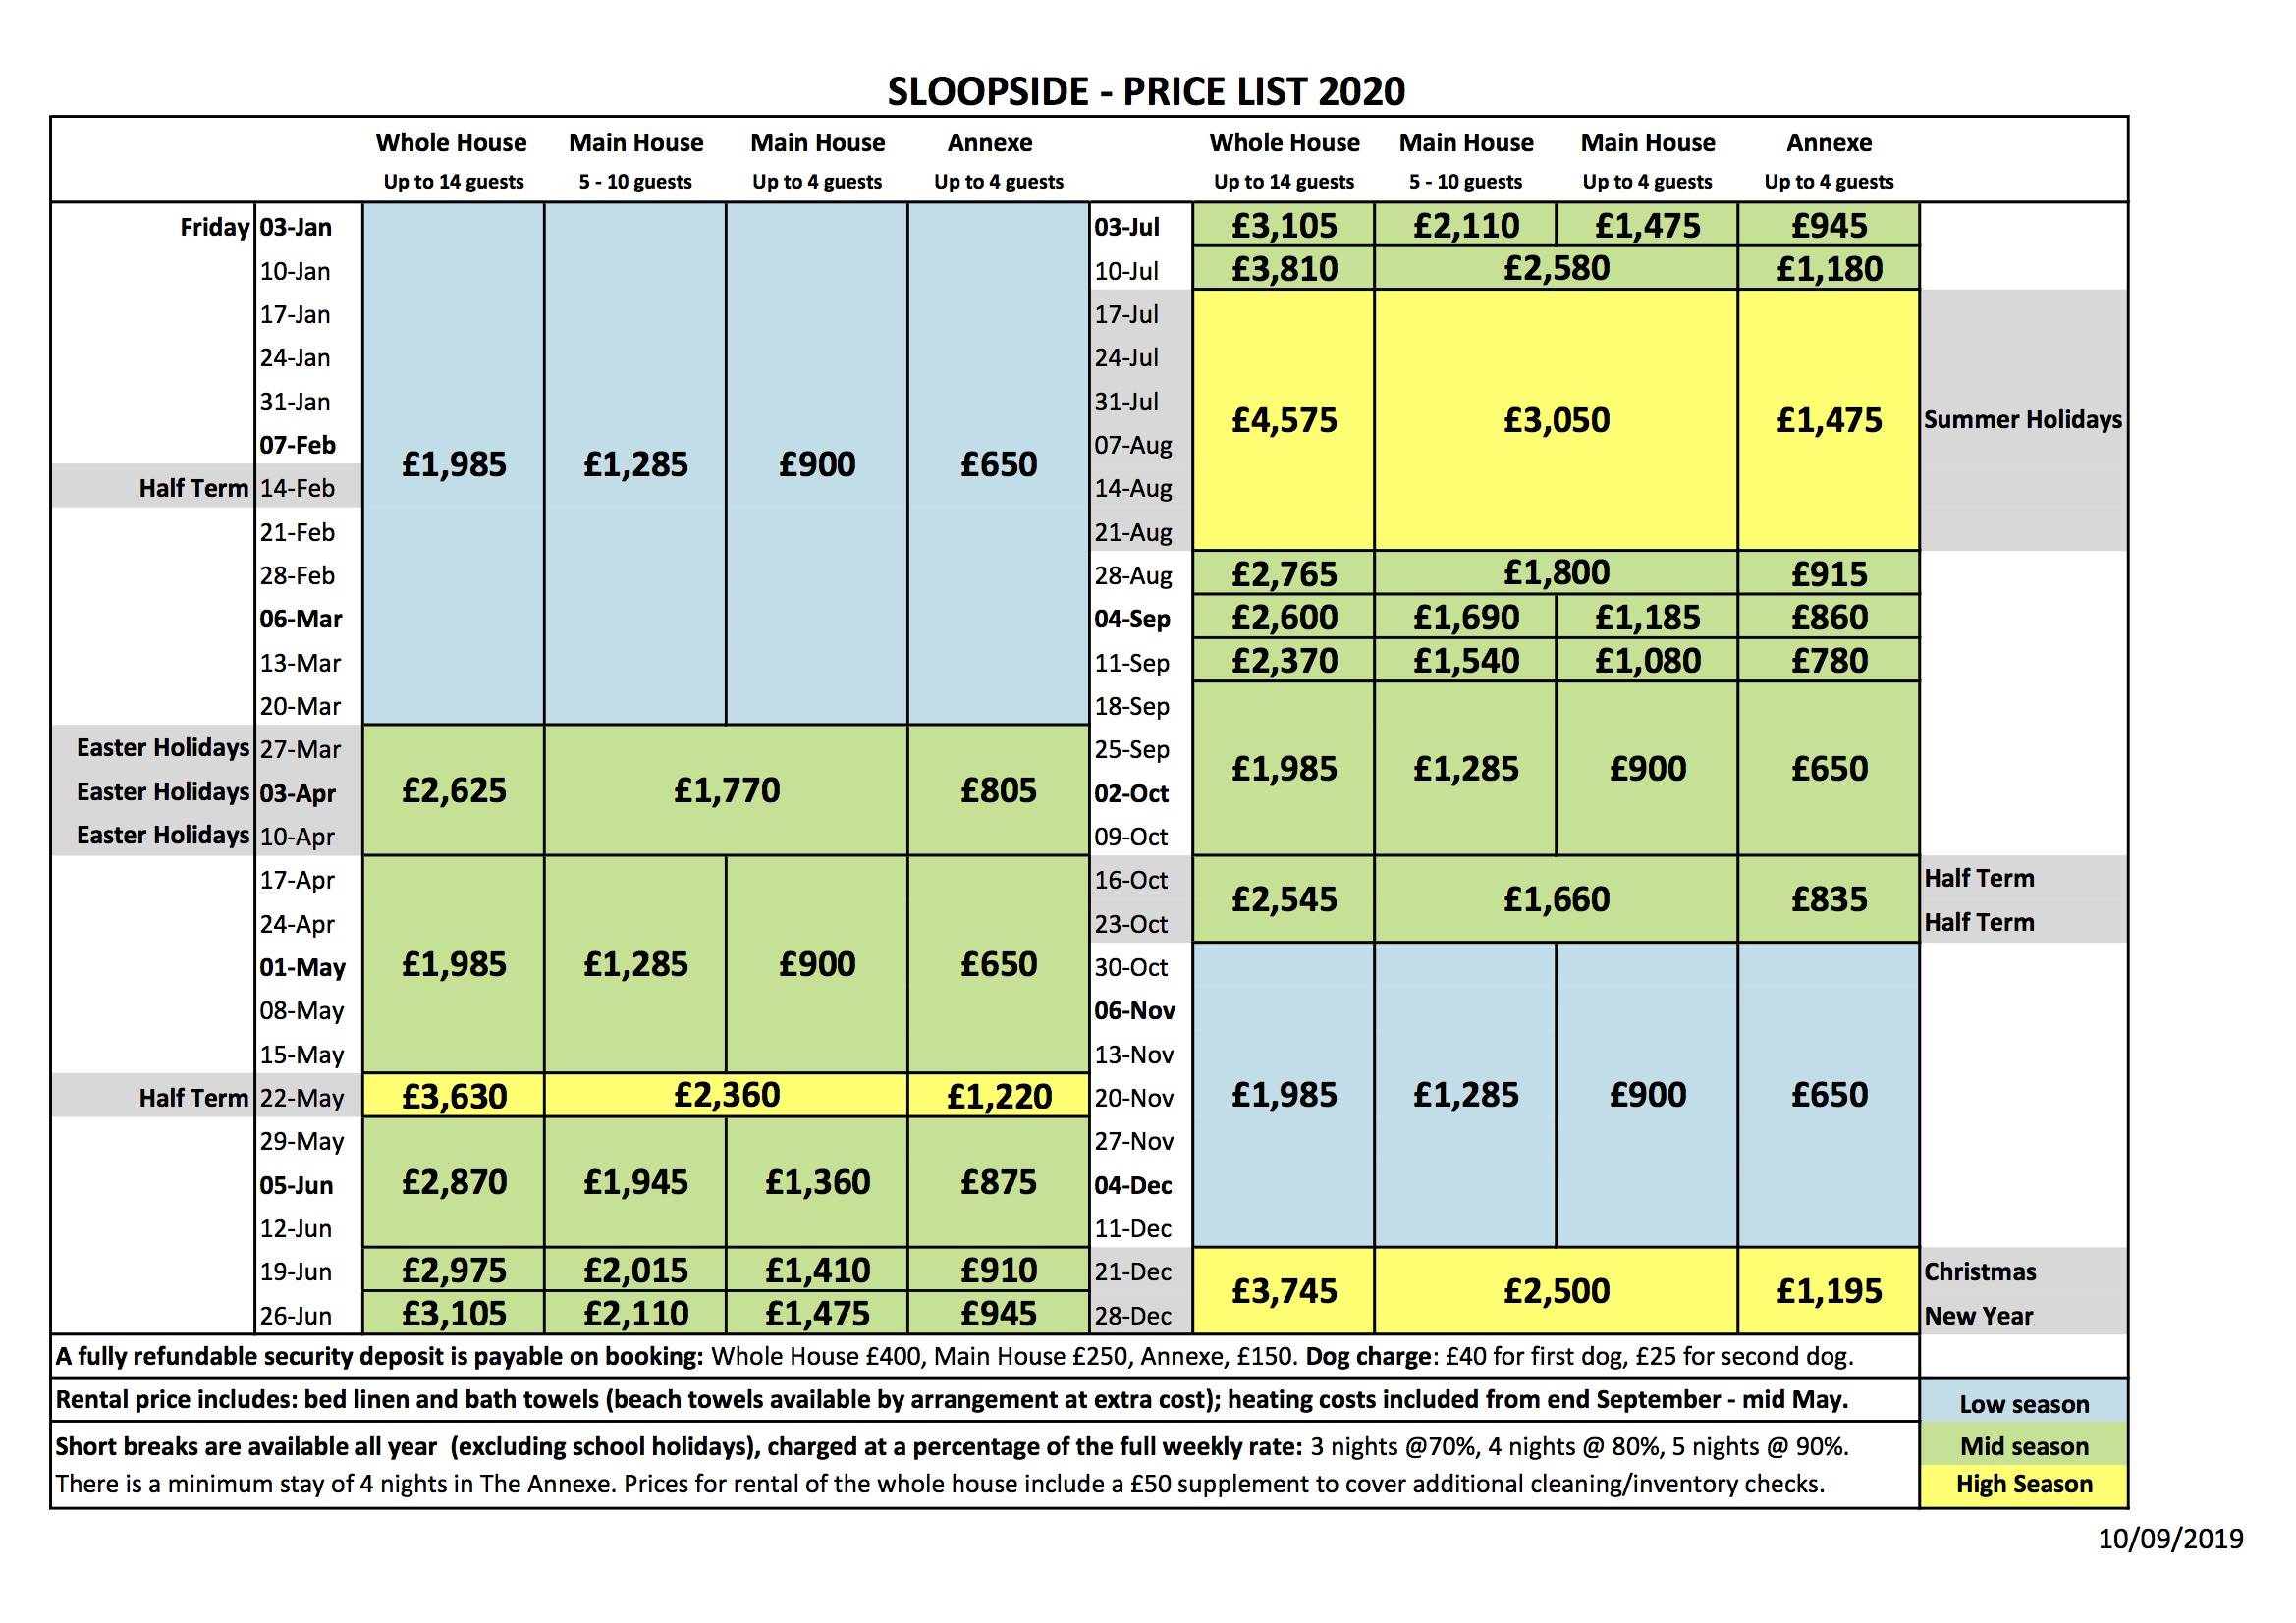 Price list for year 2020